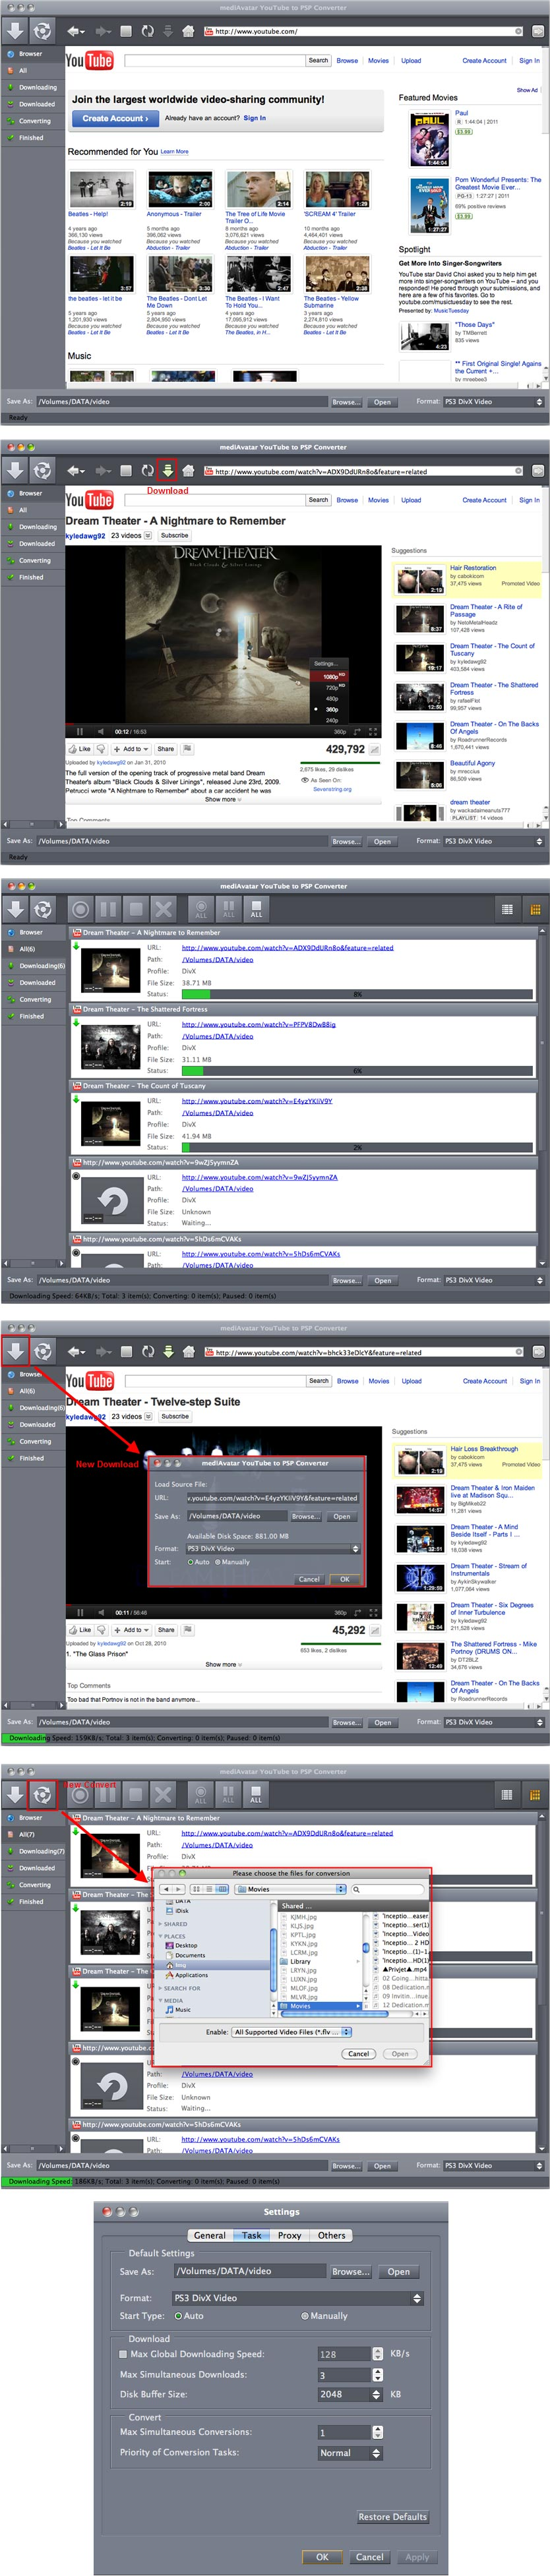 YouTube to PSP Converter Mac